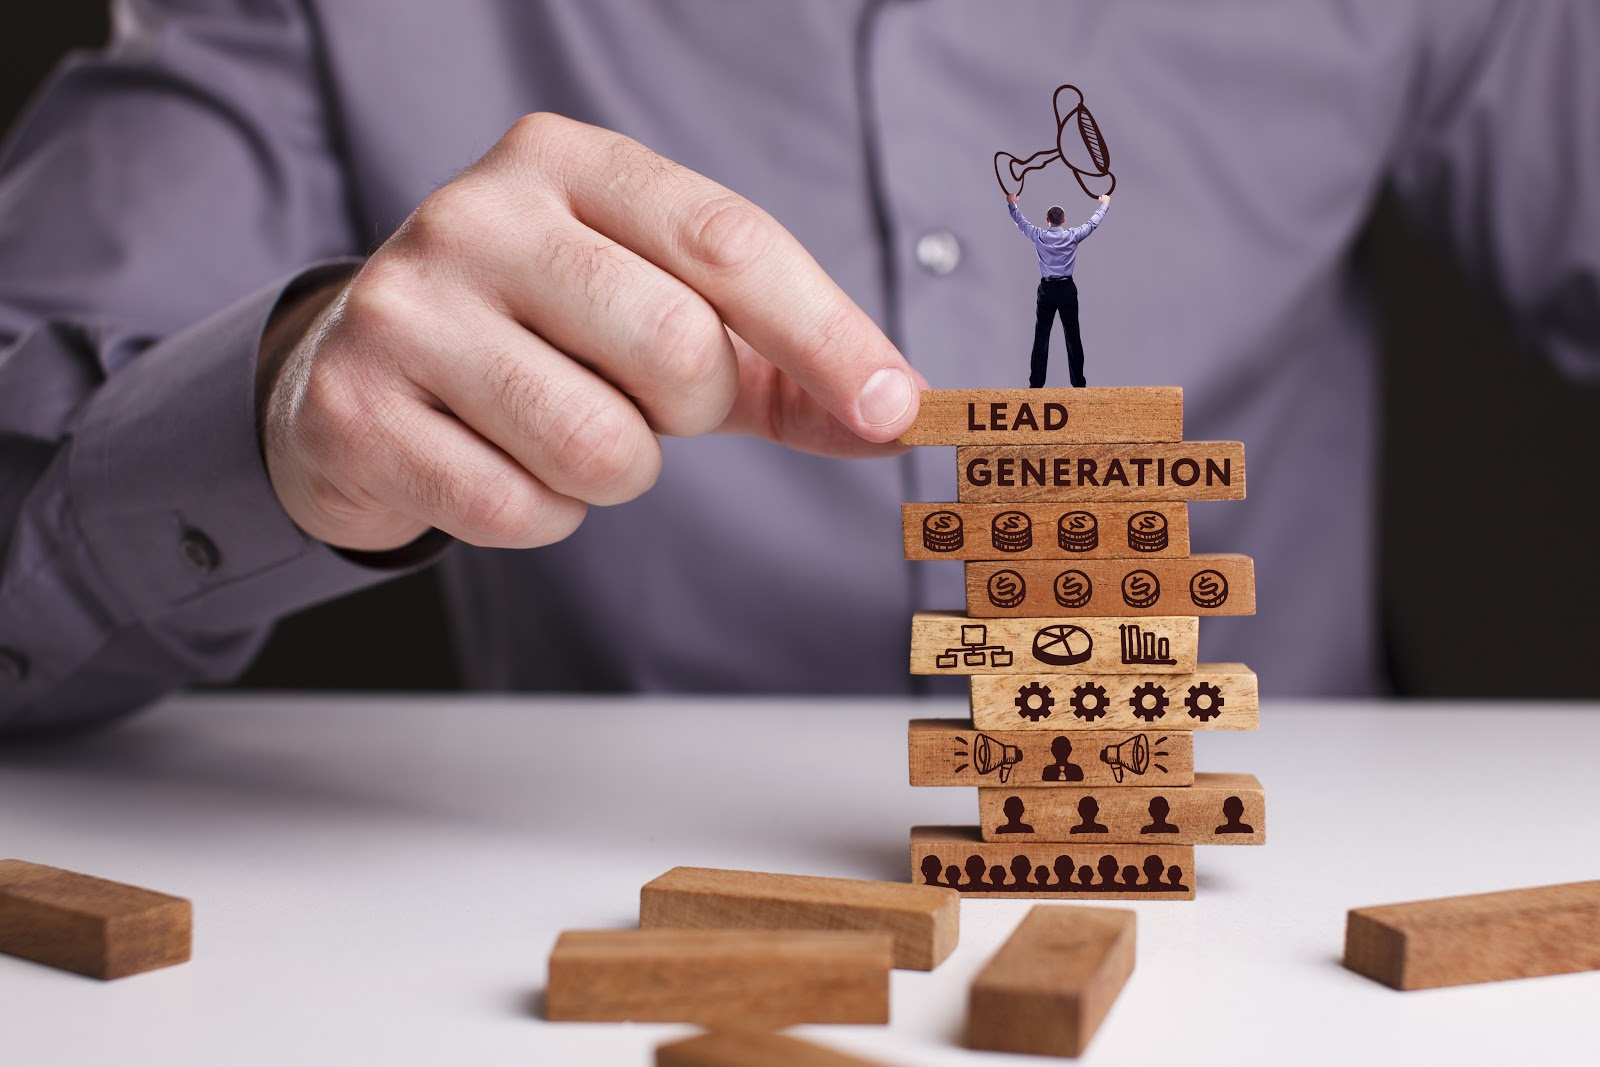 Stack of blocks showing lead generation strategies